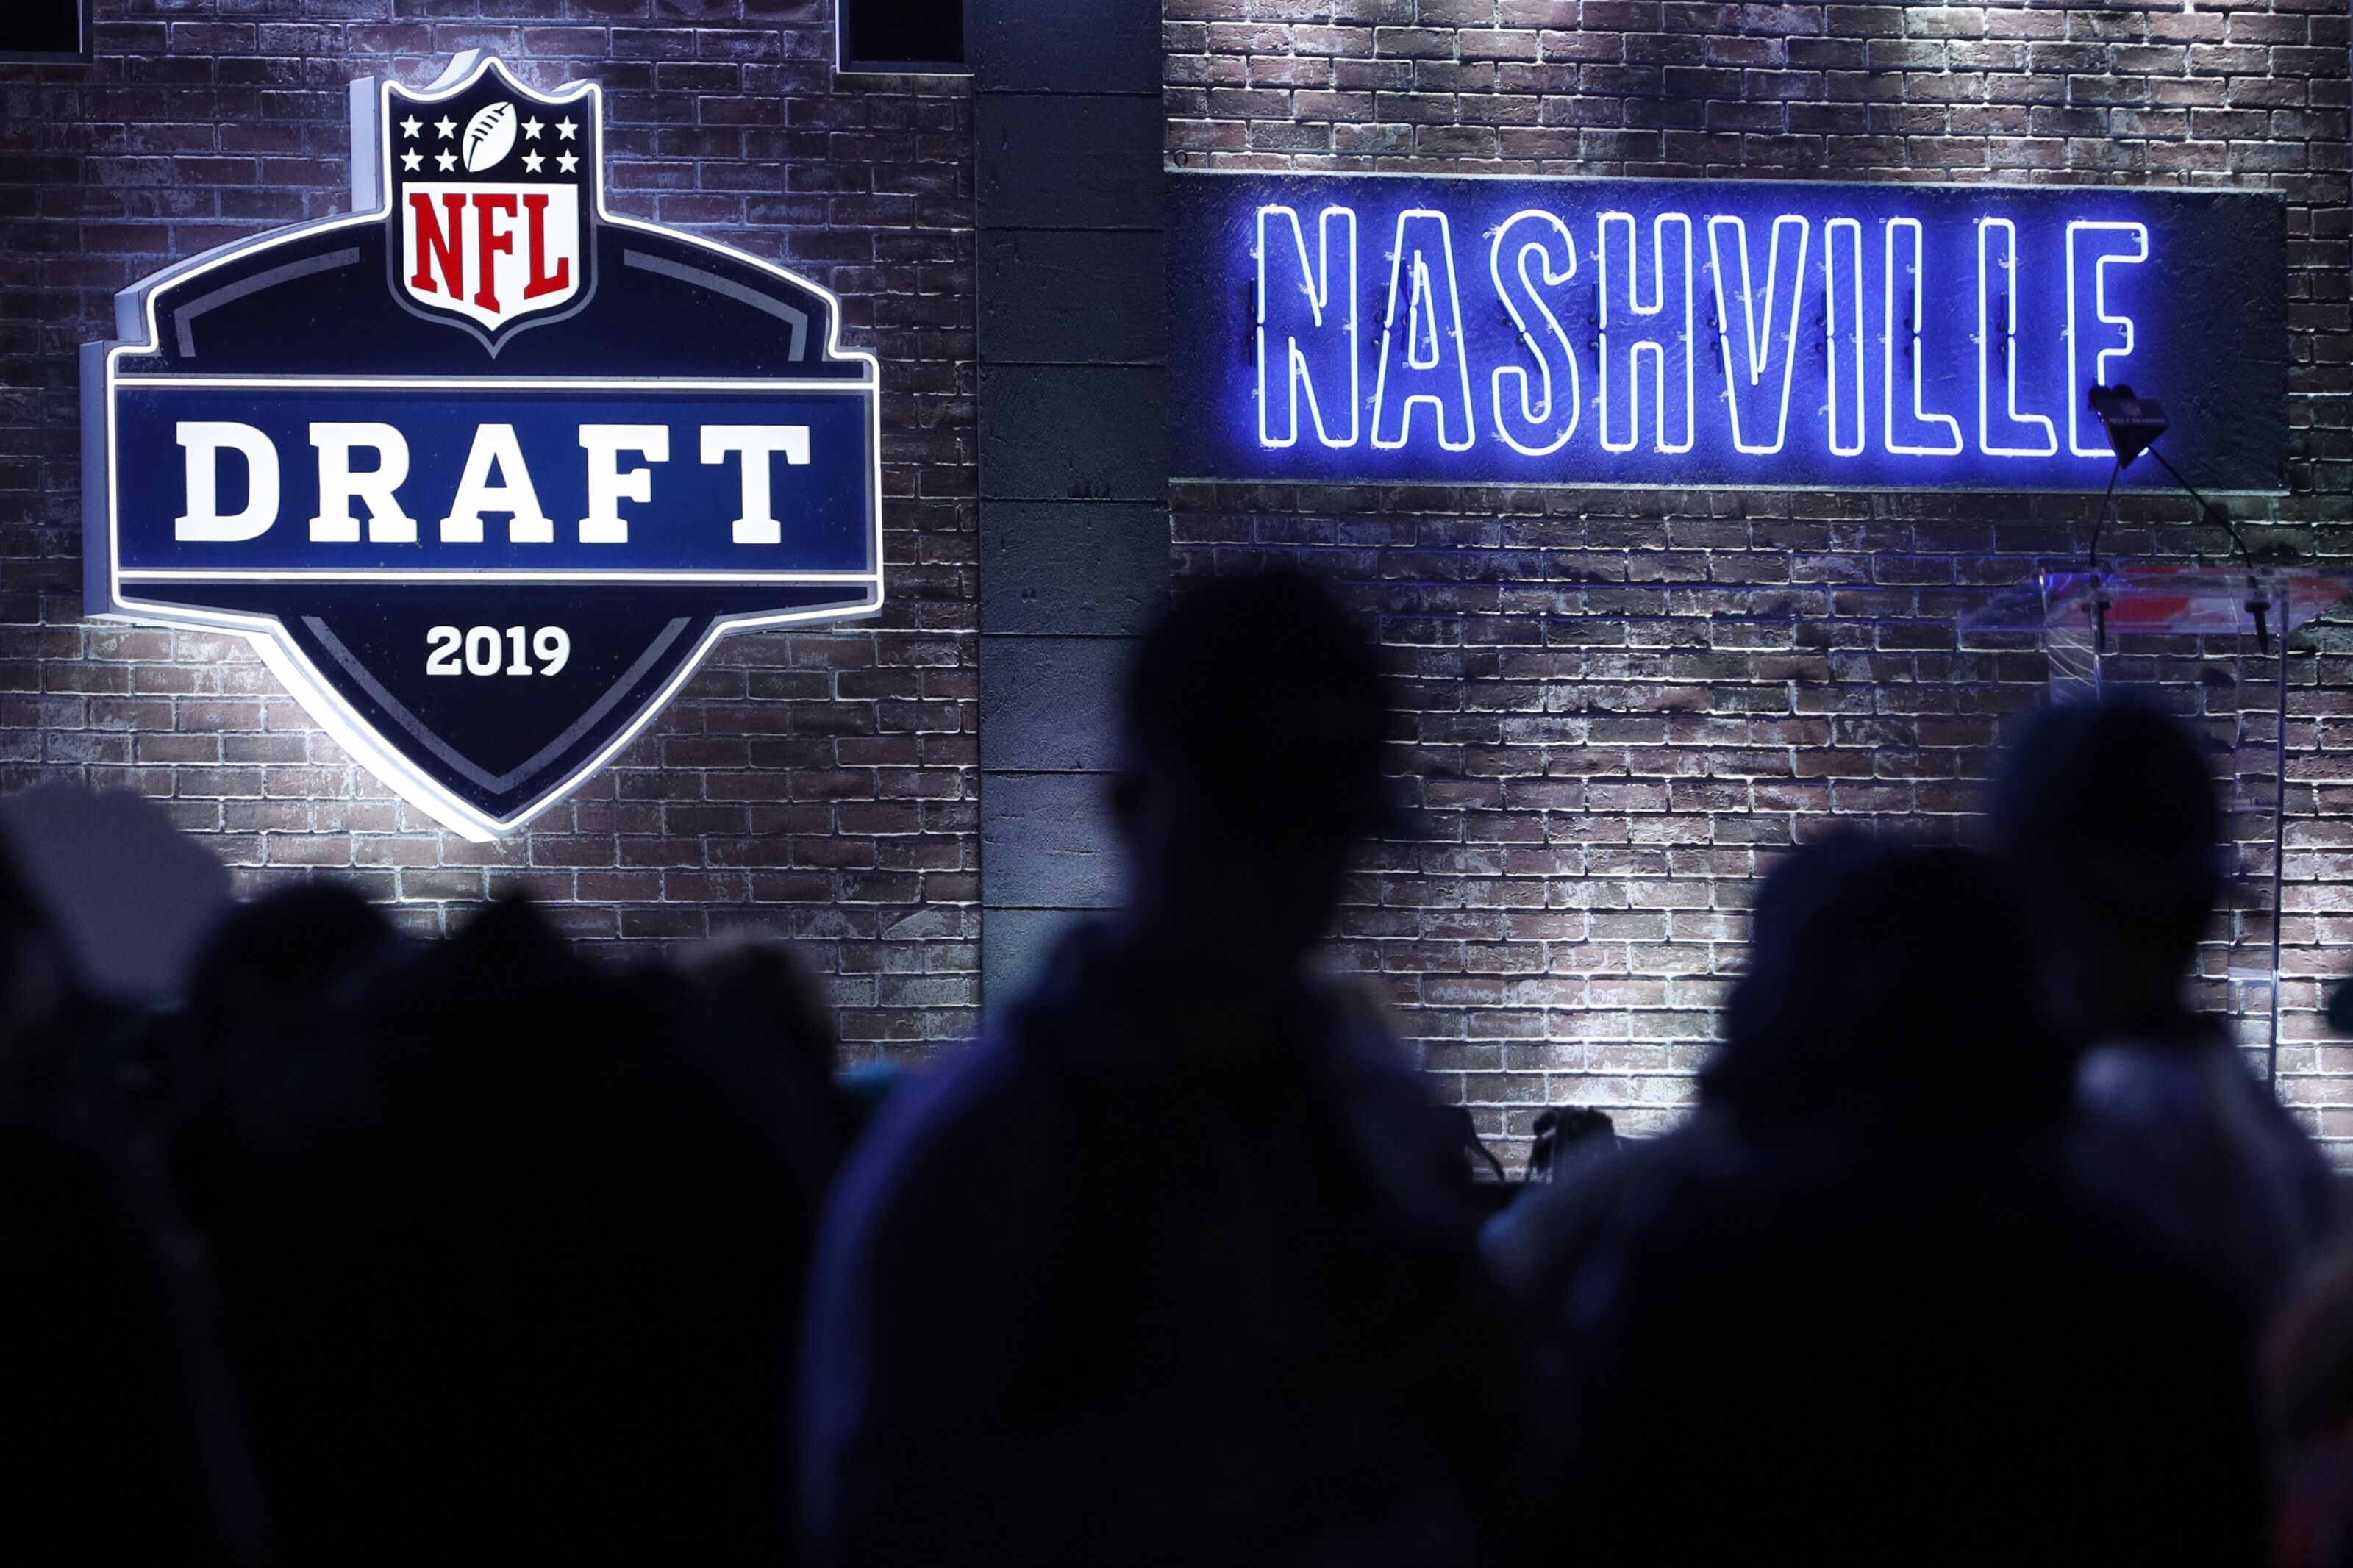 Packers own the 30th overall pick in 2020 NFL Draft